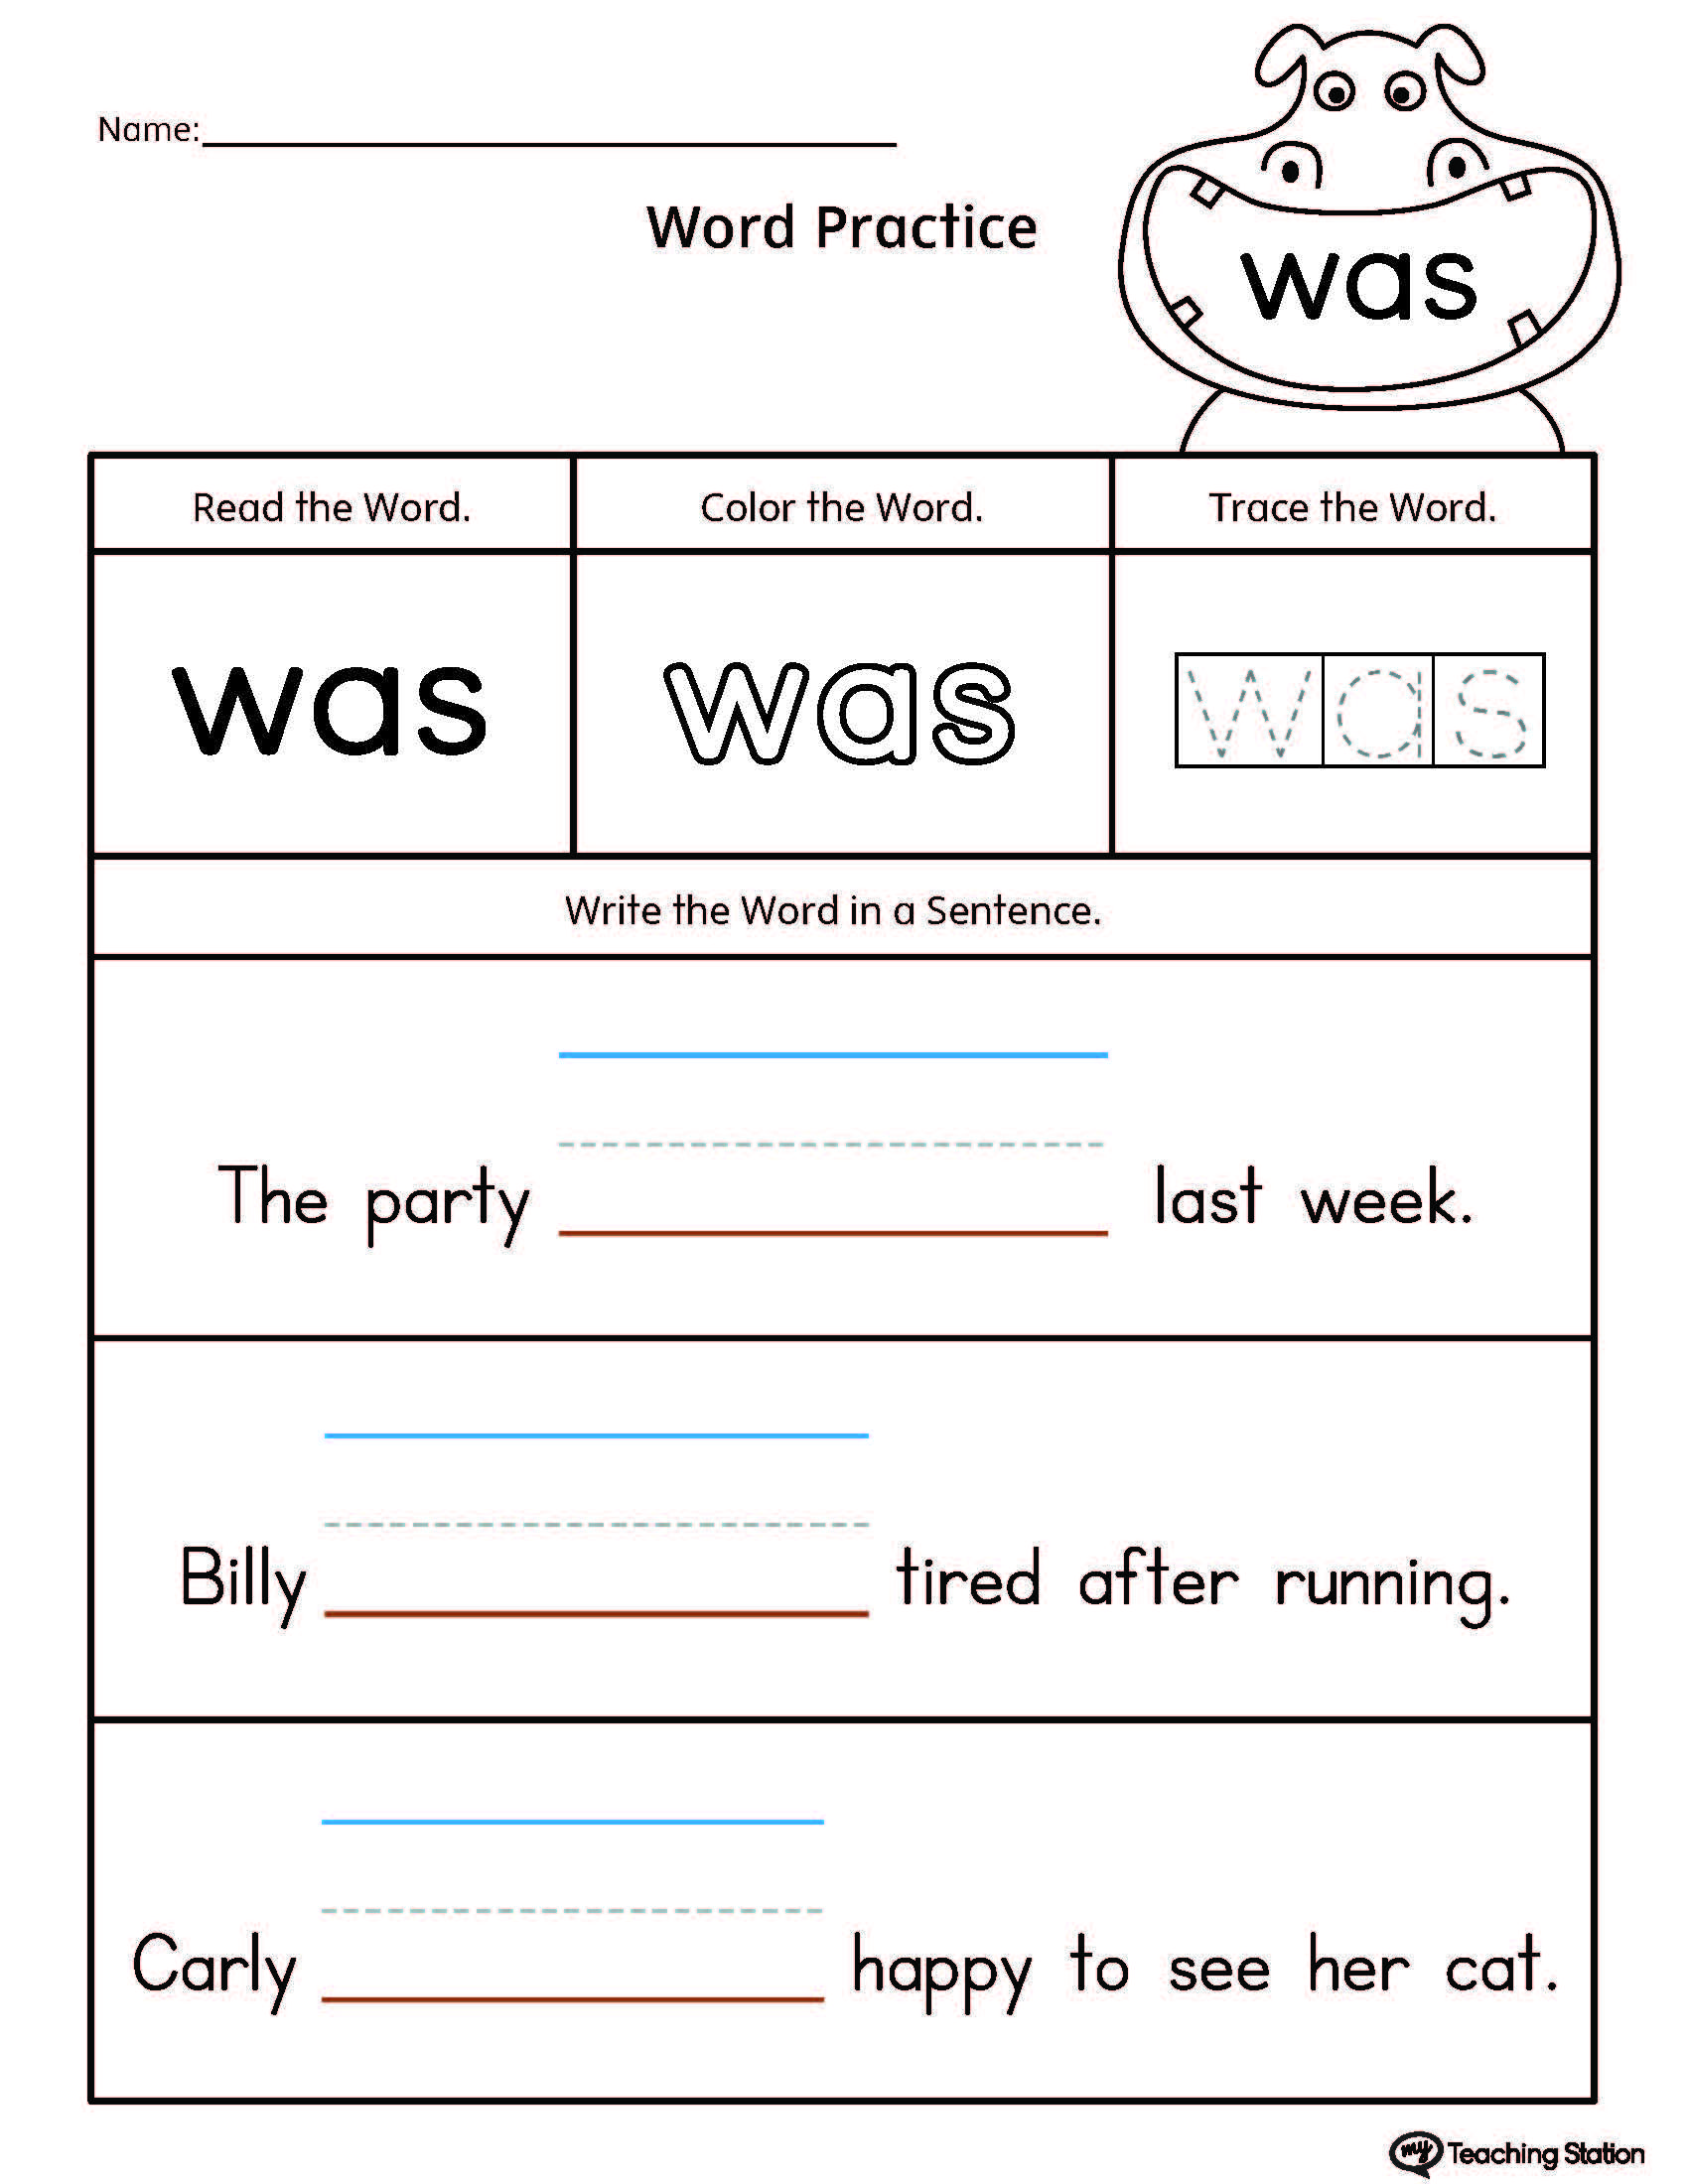 Worksheet Word Practice Worksheets high frequency word do printable worksheet practice they with this action pack your child will find trace and write the in a sentence